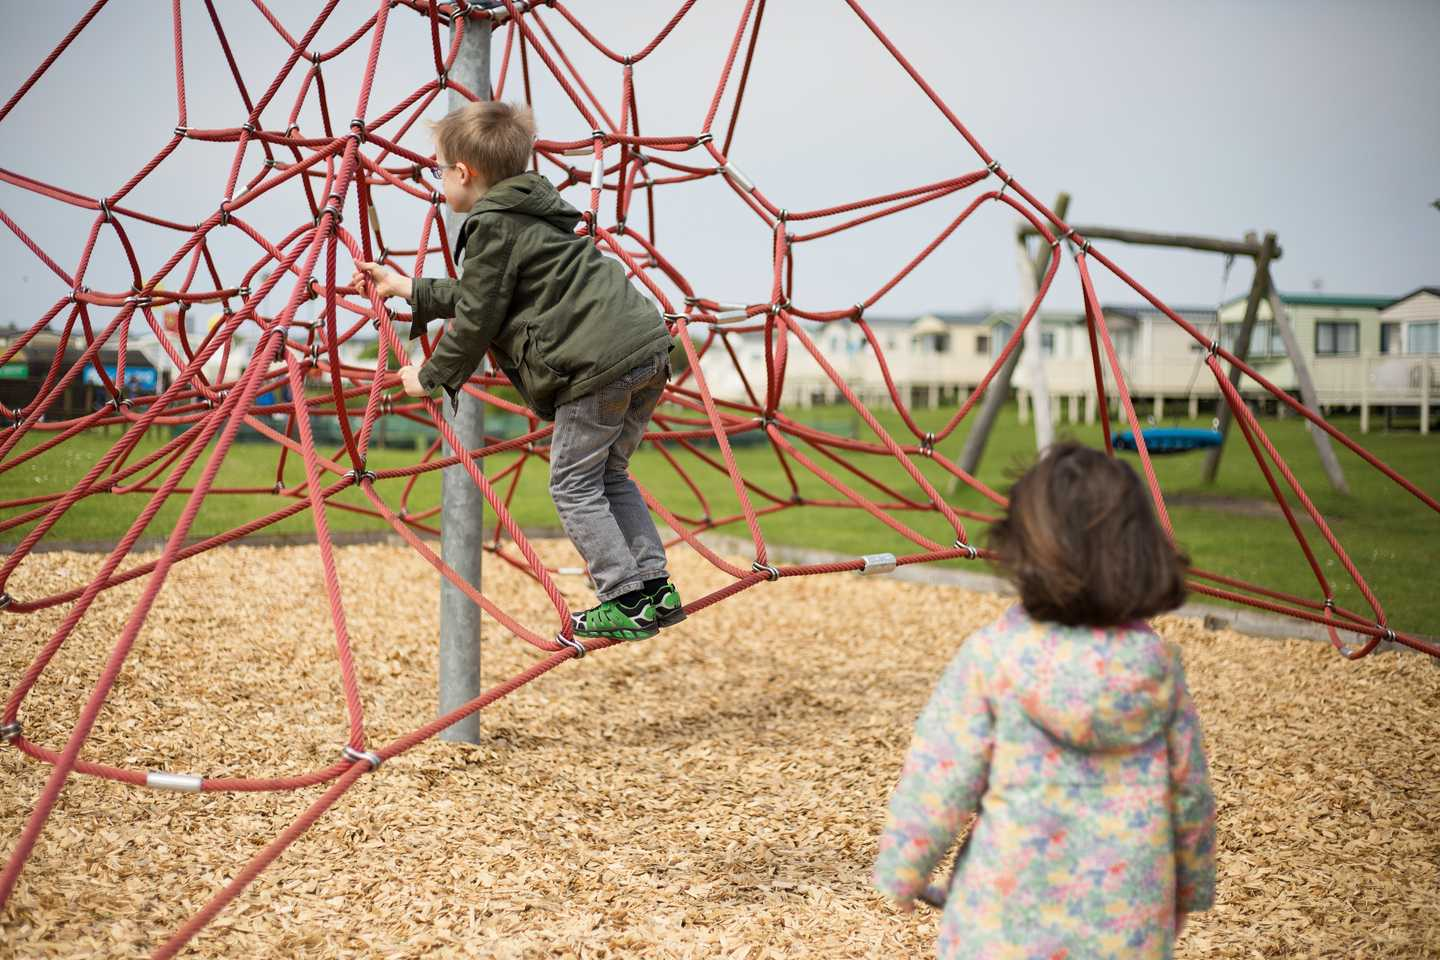 Children climbing ropes in the outdoor play area